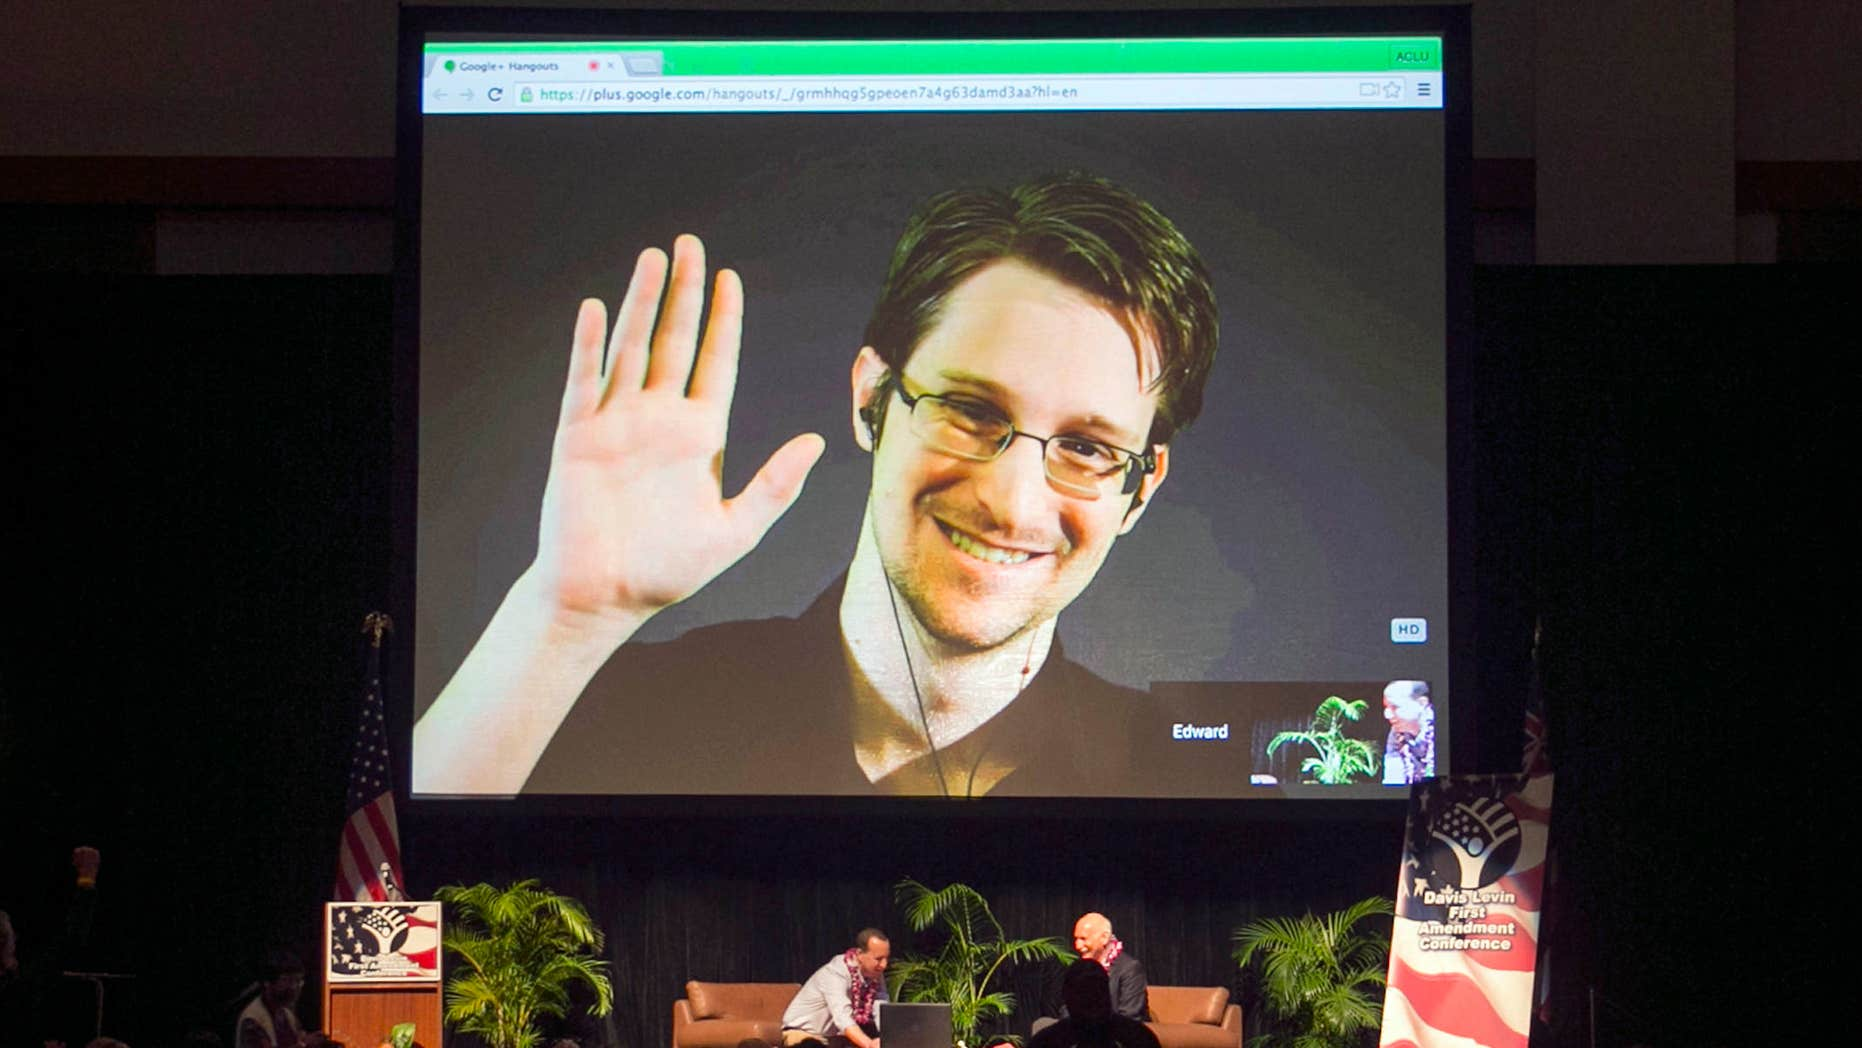 FILE - In this Feb. 14, 2015 file photo, Edward Snowden appears on a live video feed broadcast from Moscow at an event sponsored by ACLU Hawaii in Honolulu.